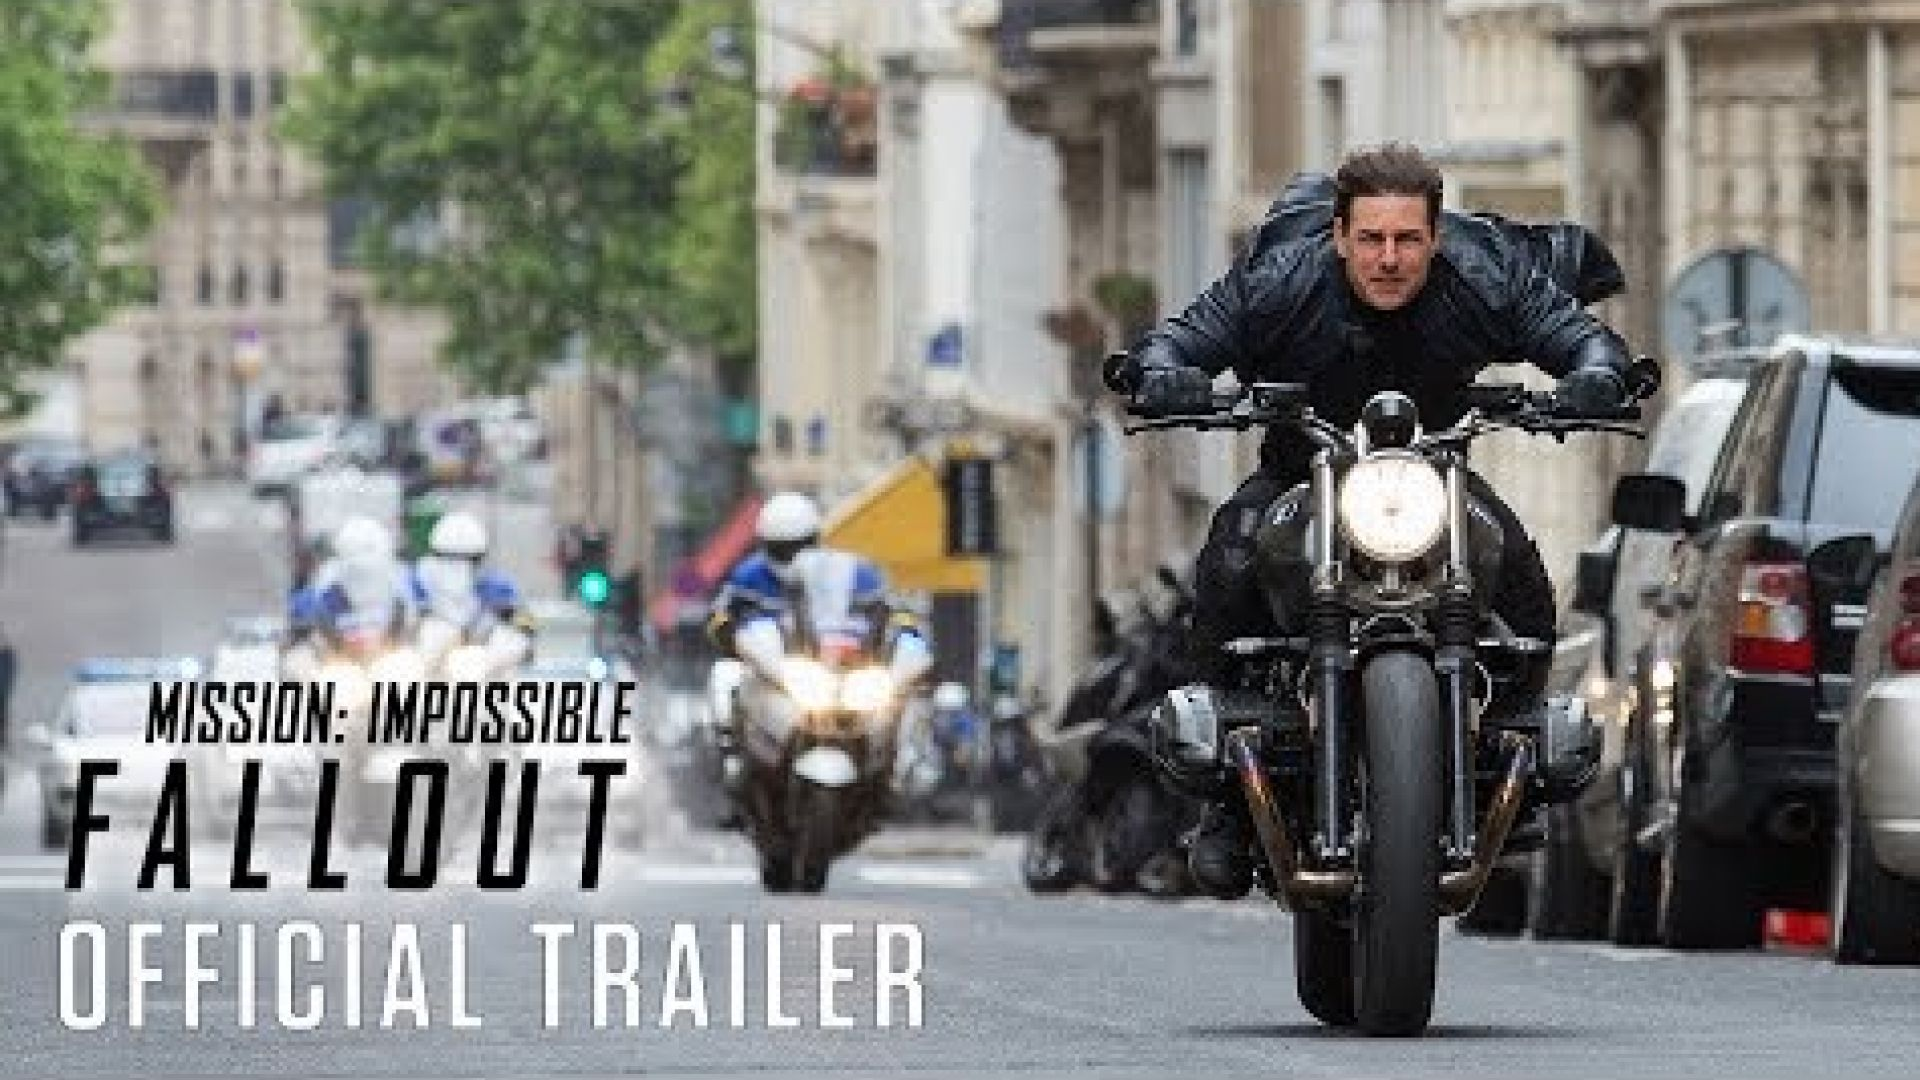 'Mission: Impossible - Fallout' Trailer 2 - Paramount